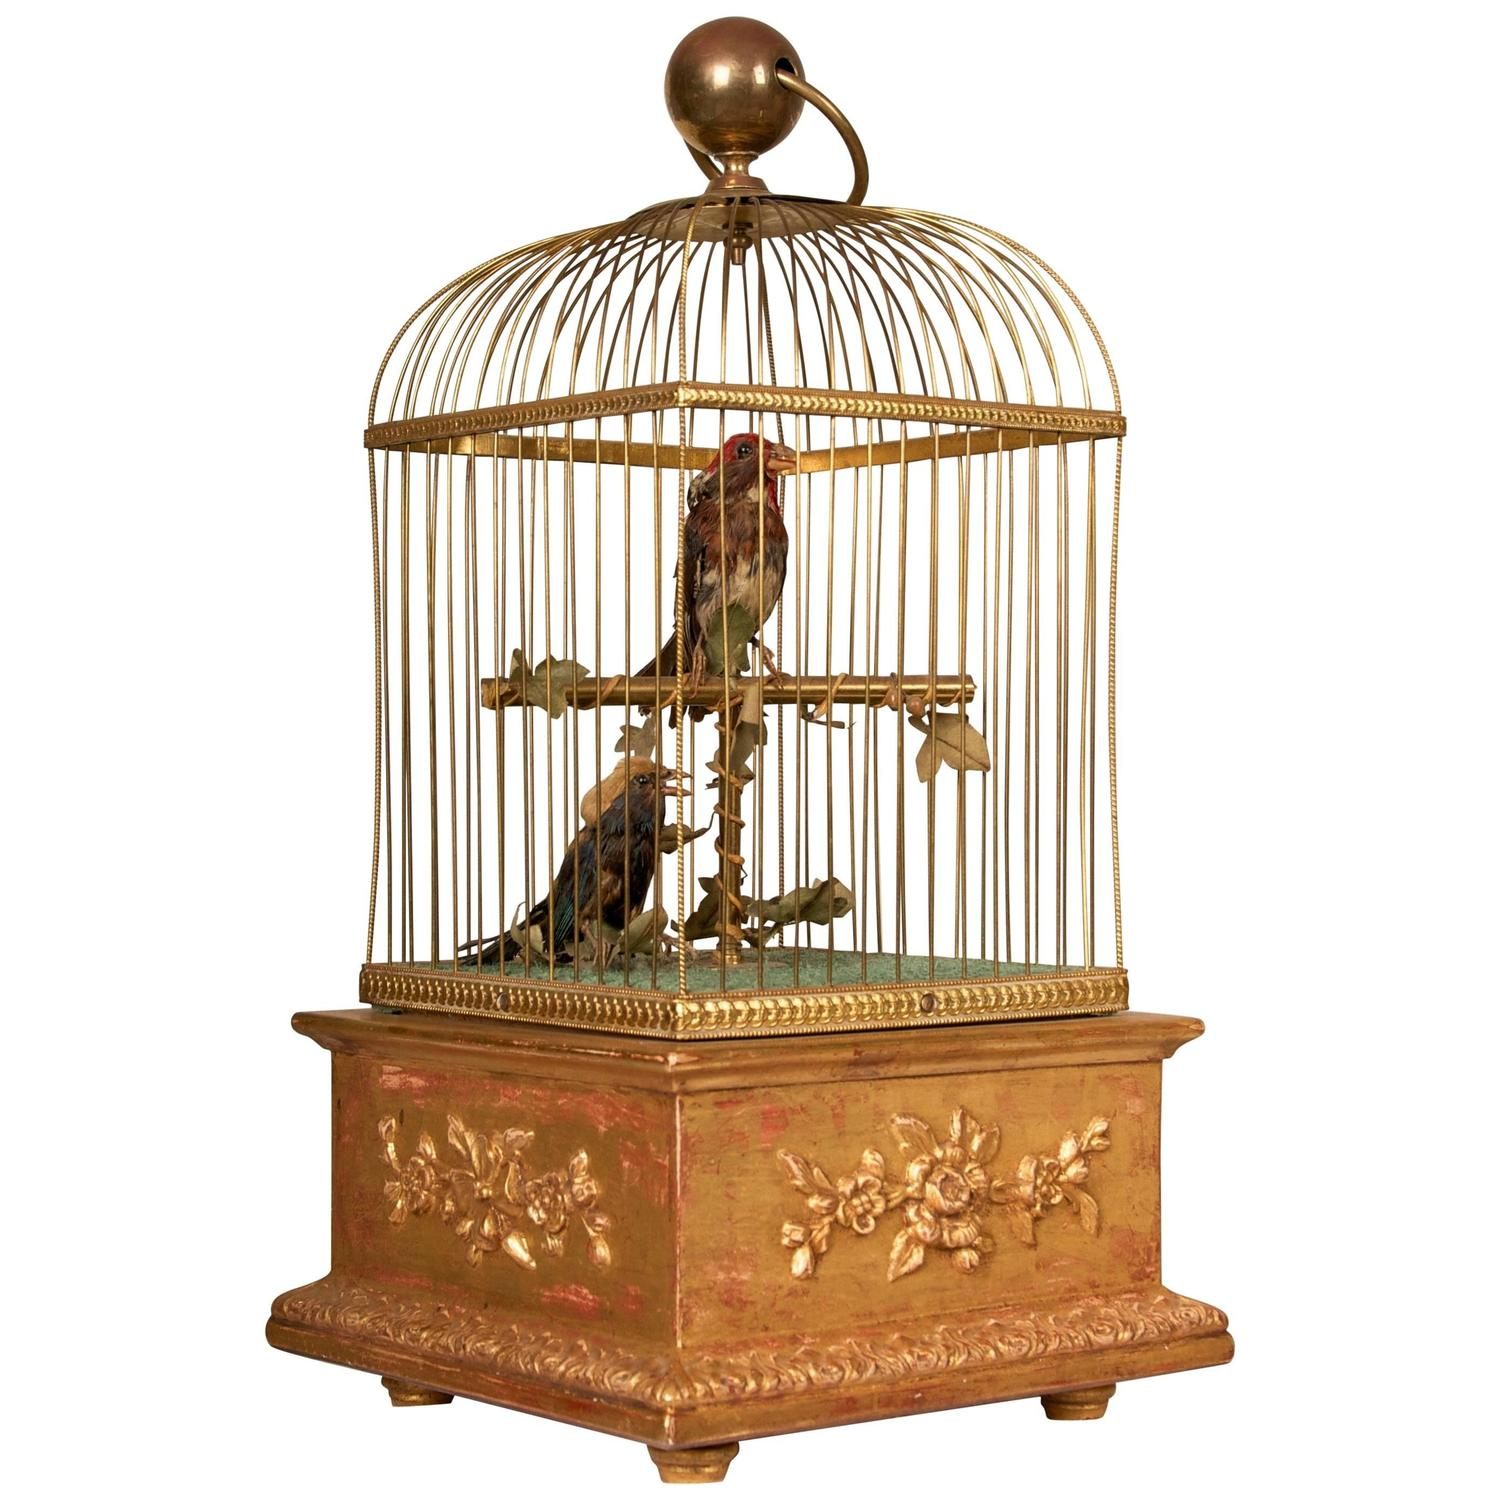 Late 19th Century French Automation Singing Birds in giltwood and brass cage  For Sale at 1stdibs